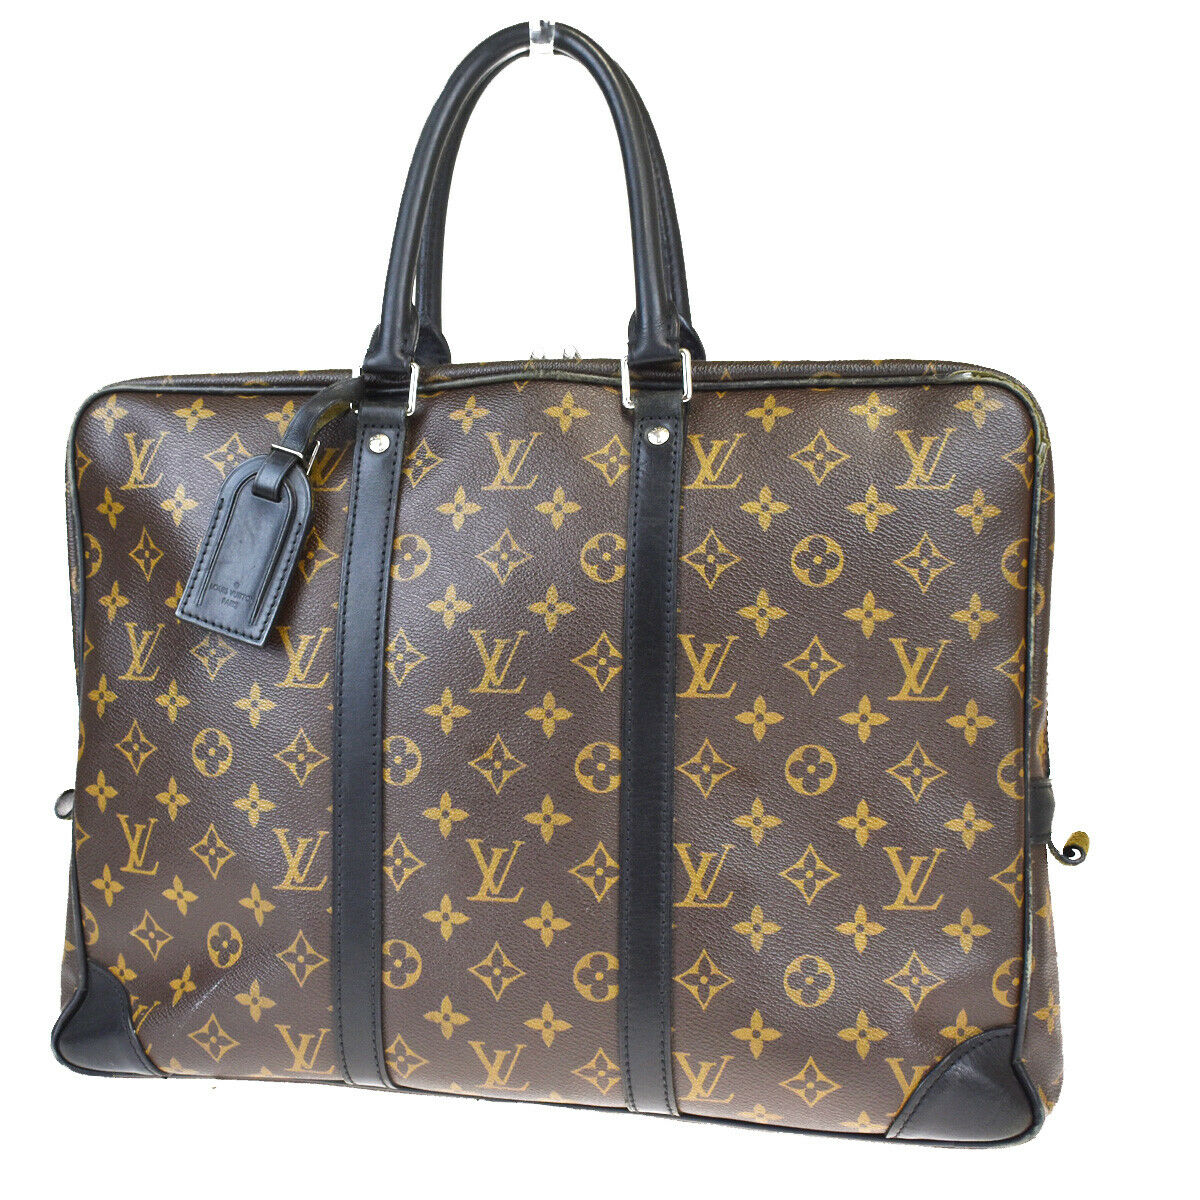 LOUIS VUITTON Monogram Macassar Porte-Documents Voyage PM